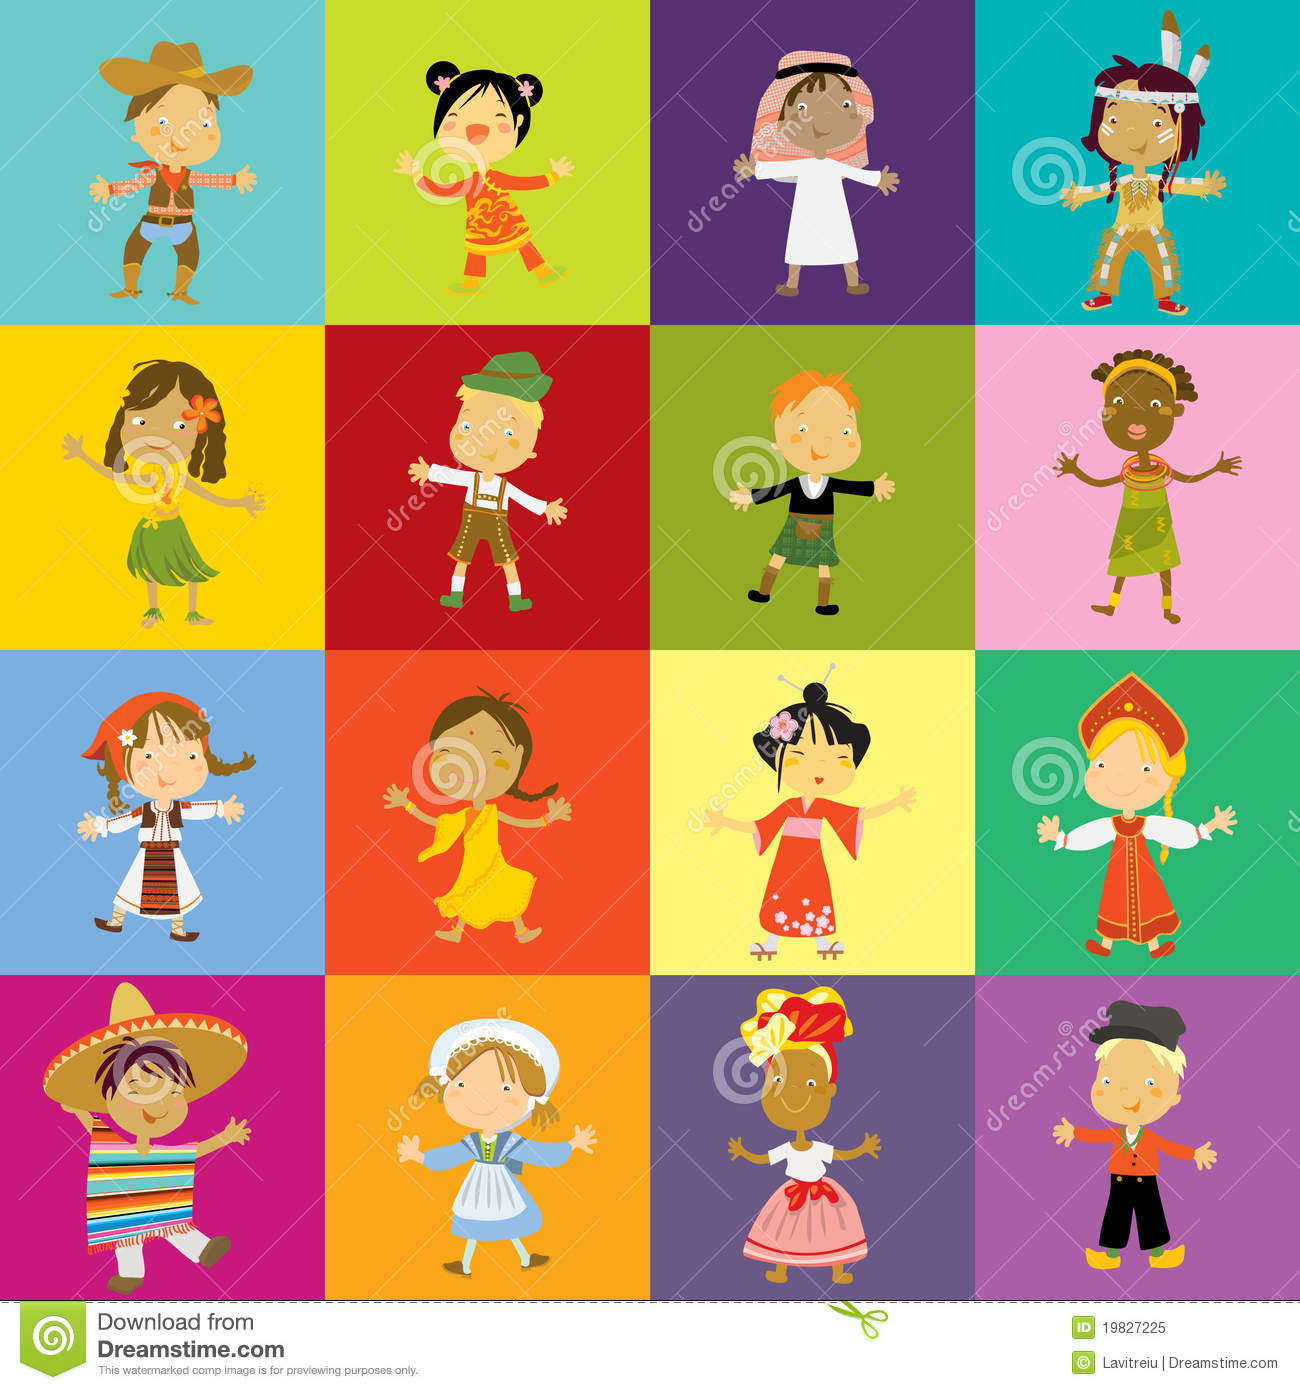 Culture clipart school diversity Royalty Preview Kids Cultures Collection